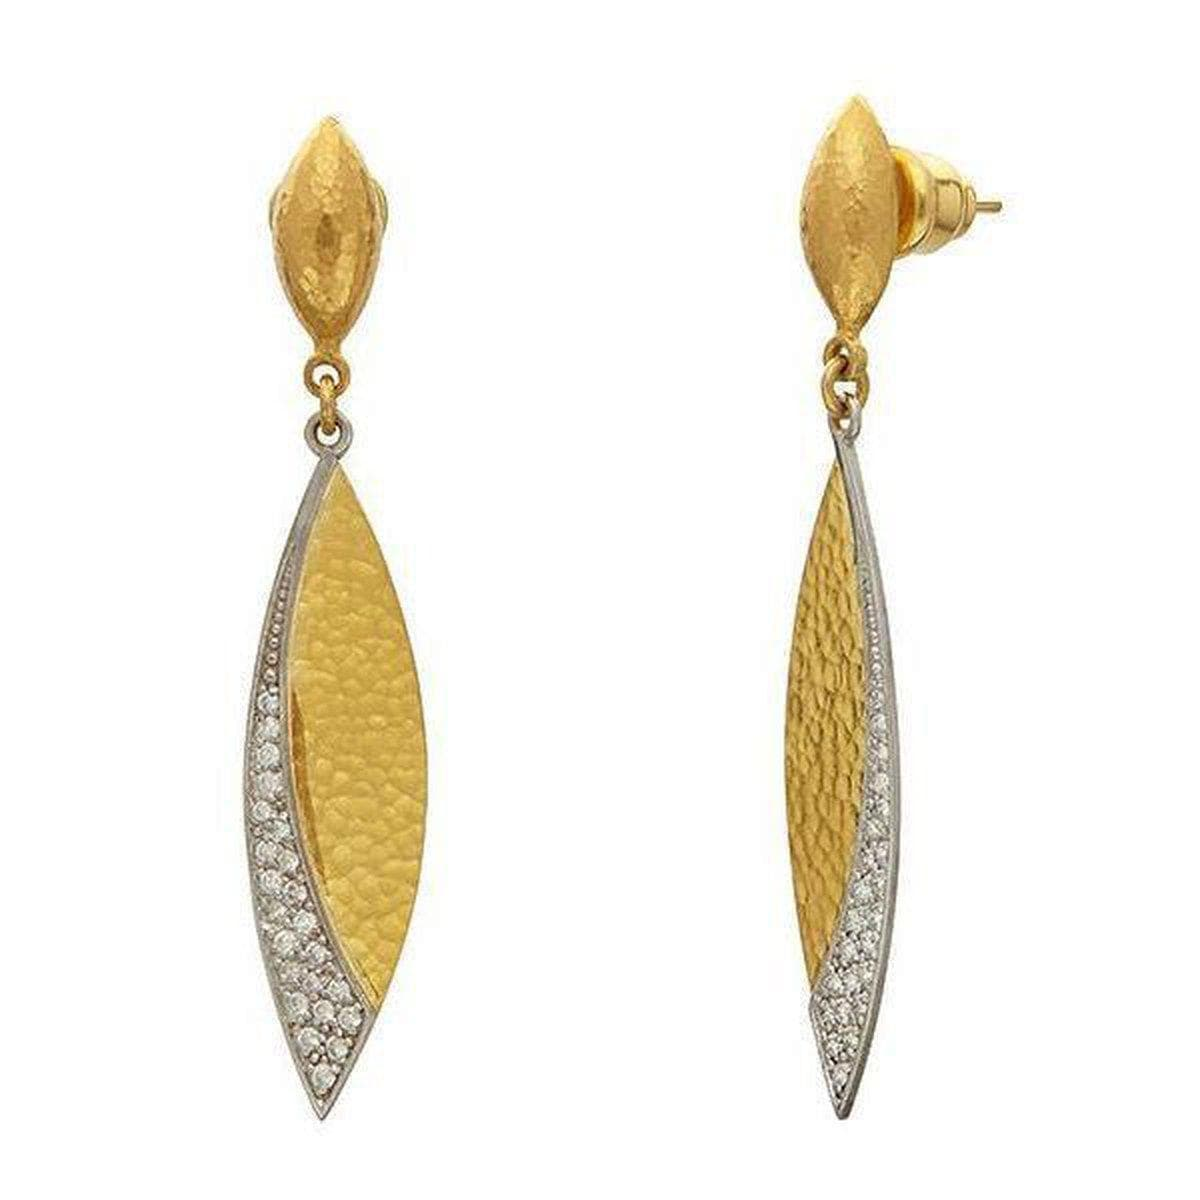 Mango 24K Gold White Diamond Earrings - EOL-LSPV-MQ30-DI-GURHAN-Renee Taylor Gallery